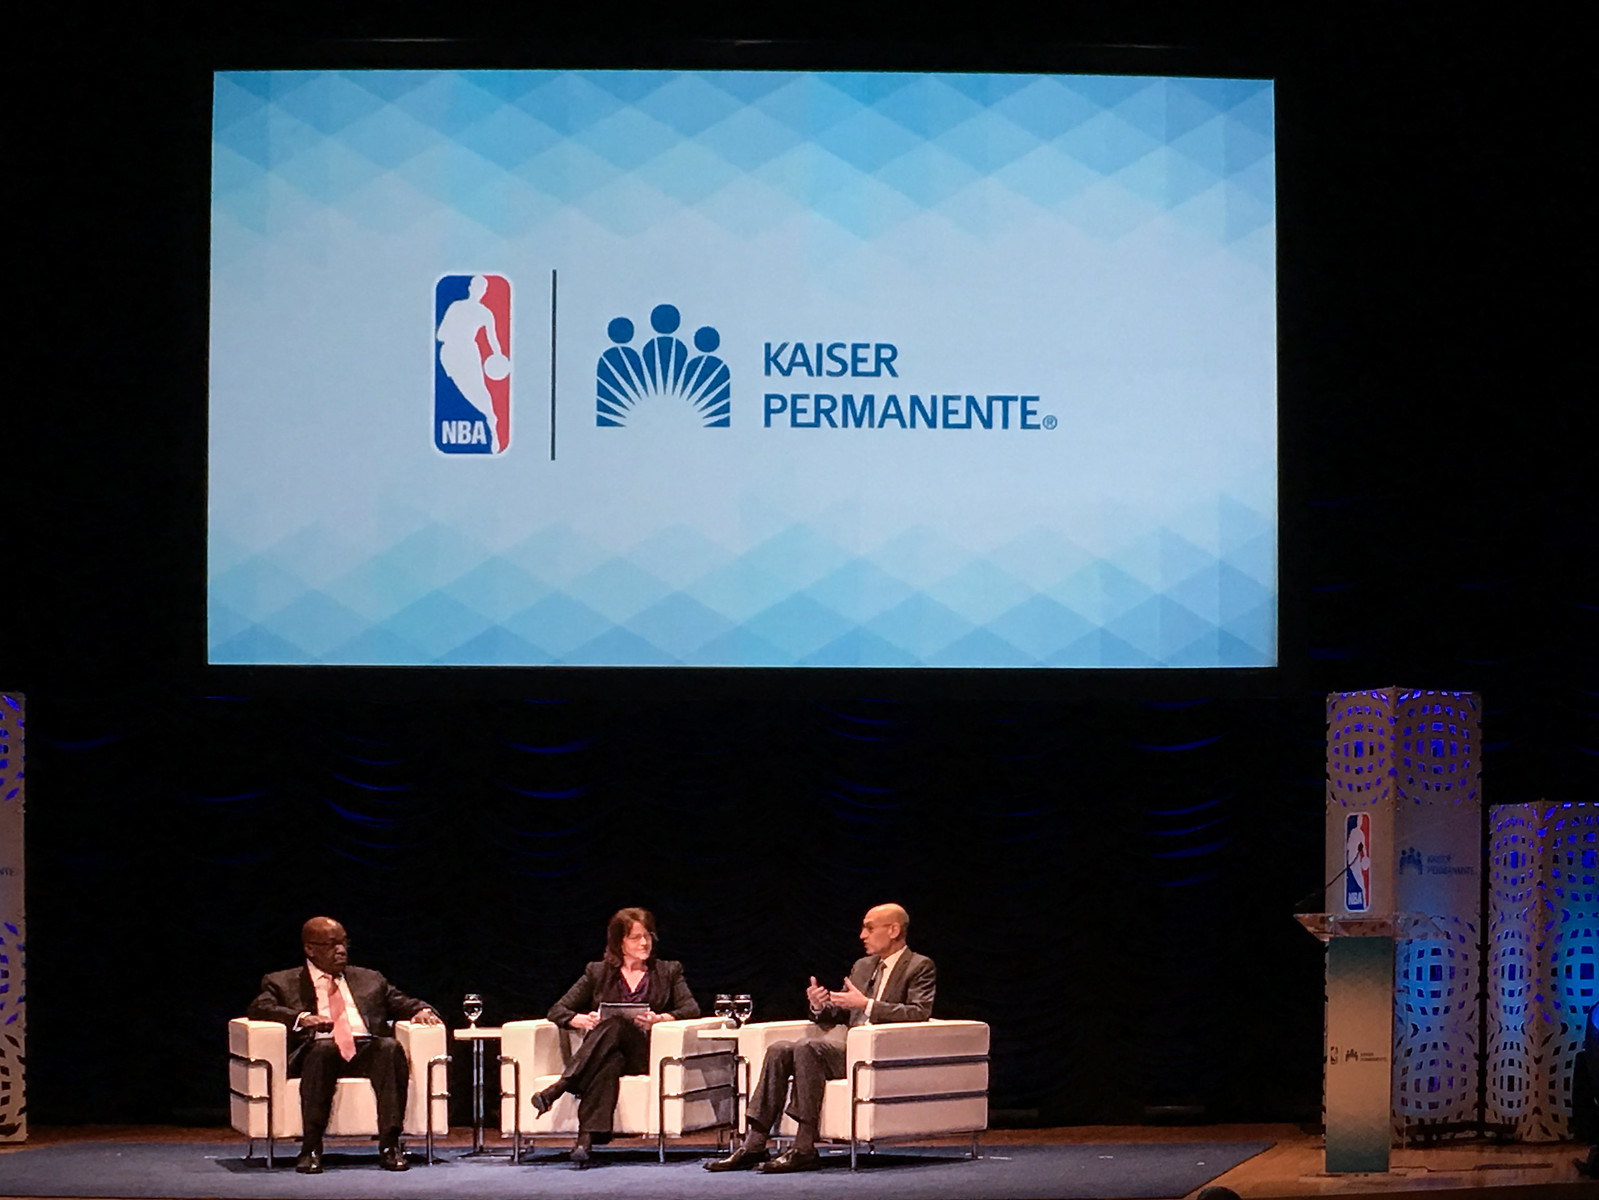 TotalHealthForum with Kaiser Permanente and NBA 0400